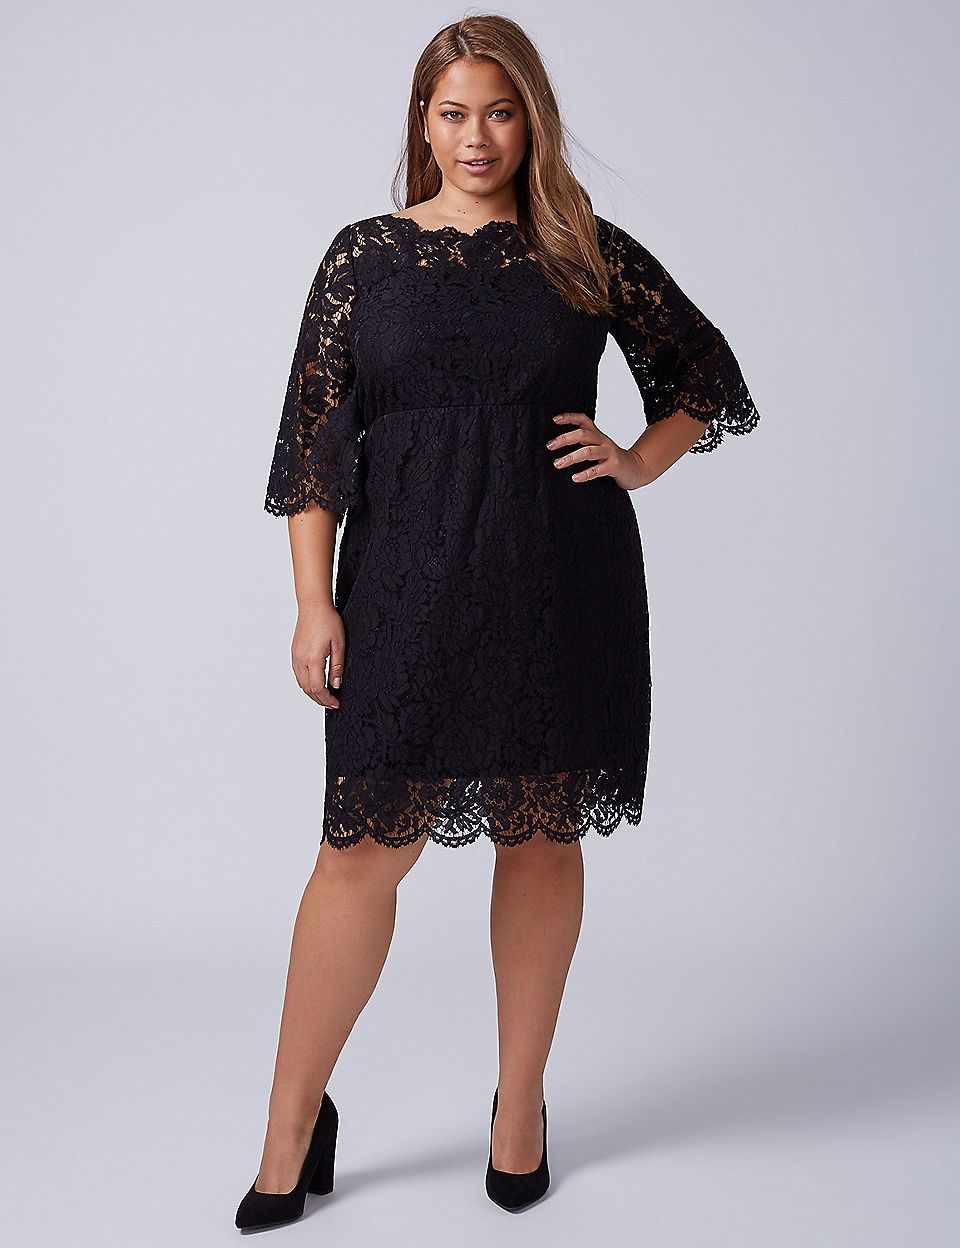 Scallop-Edge Lace Fit & Flare Dress | Lane Bryant | Dresses ...